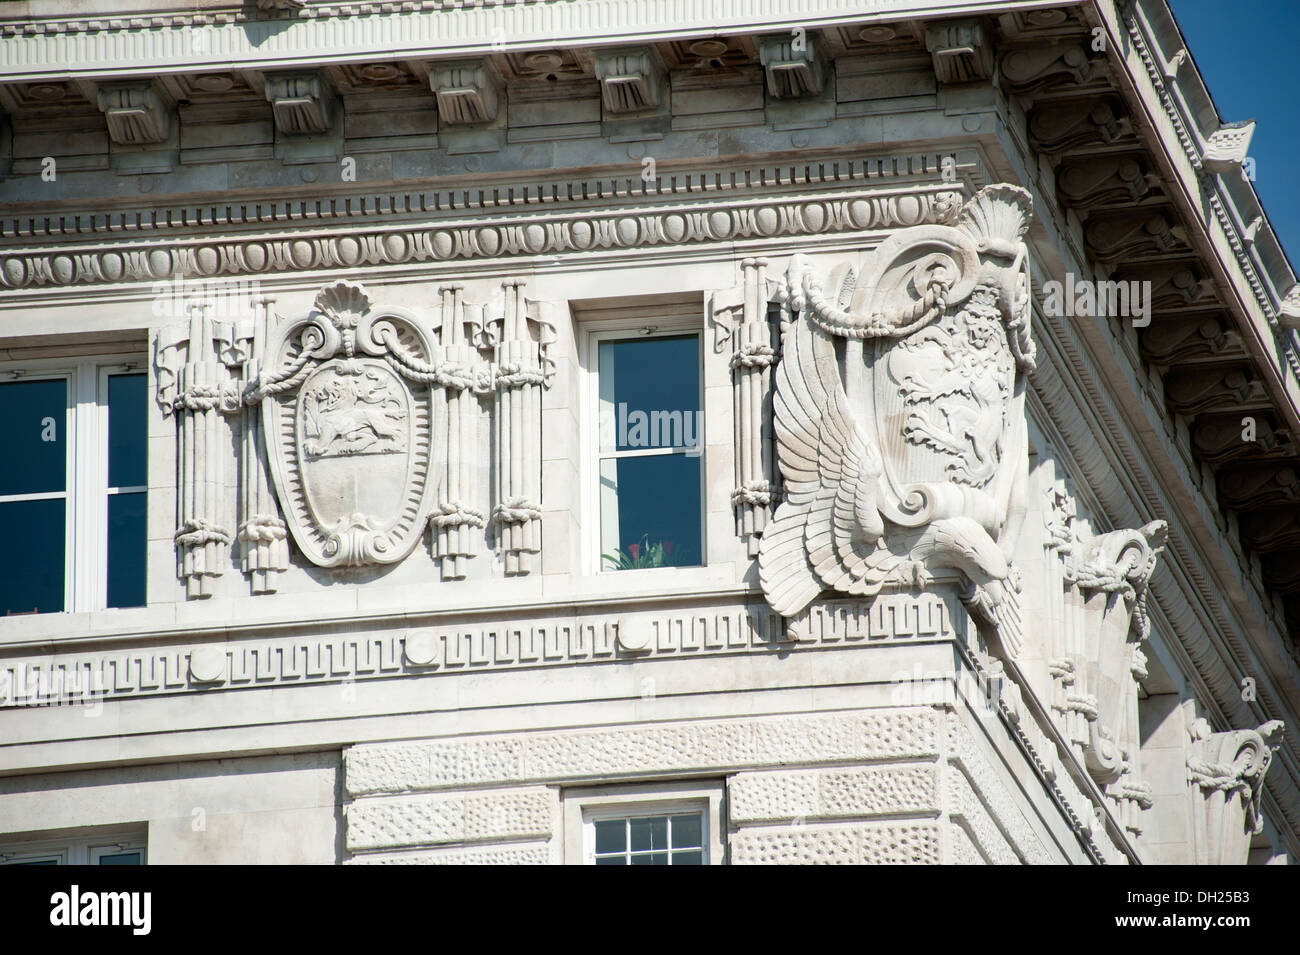 Ornate Stone carvings Public Building Liverpool UK - Stock Image